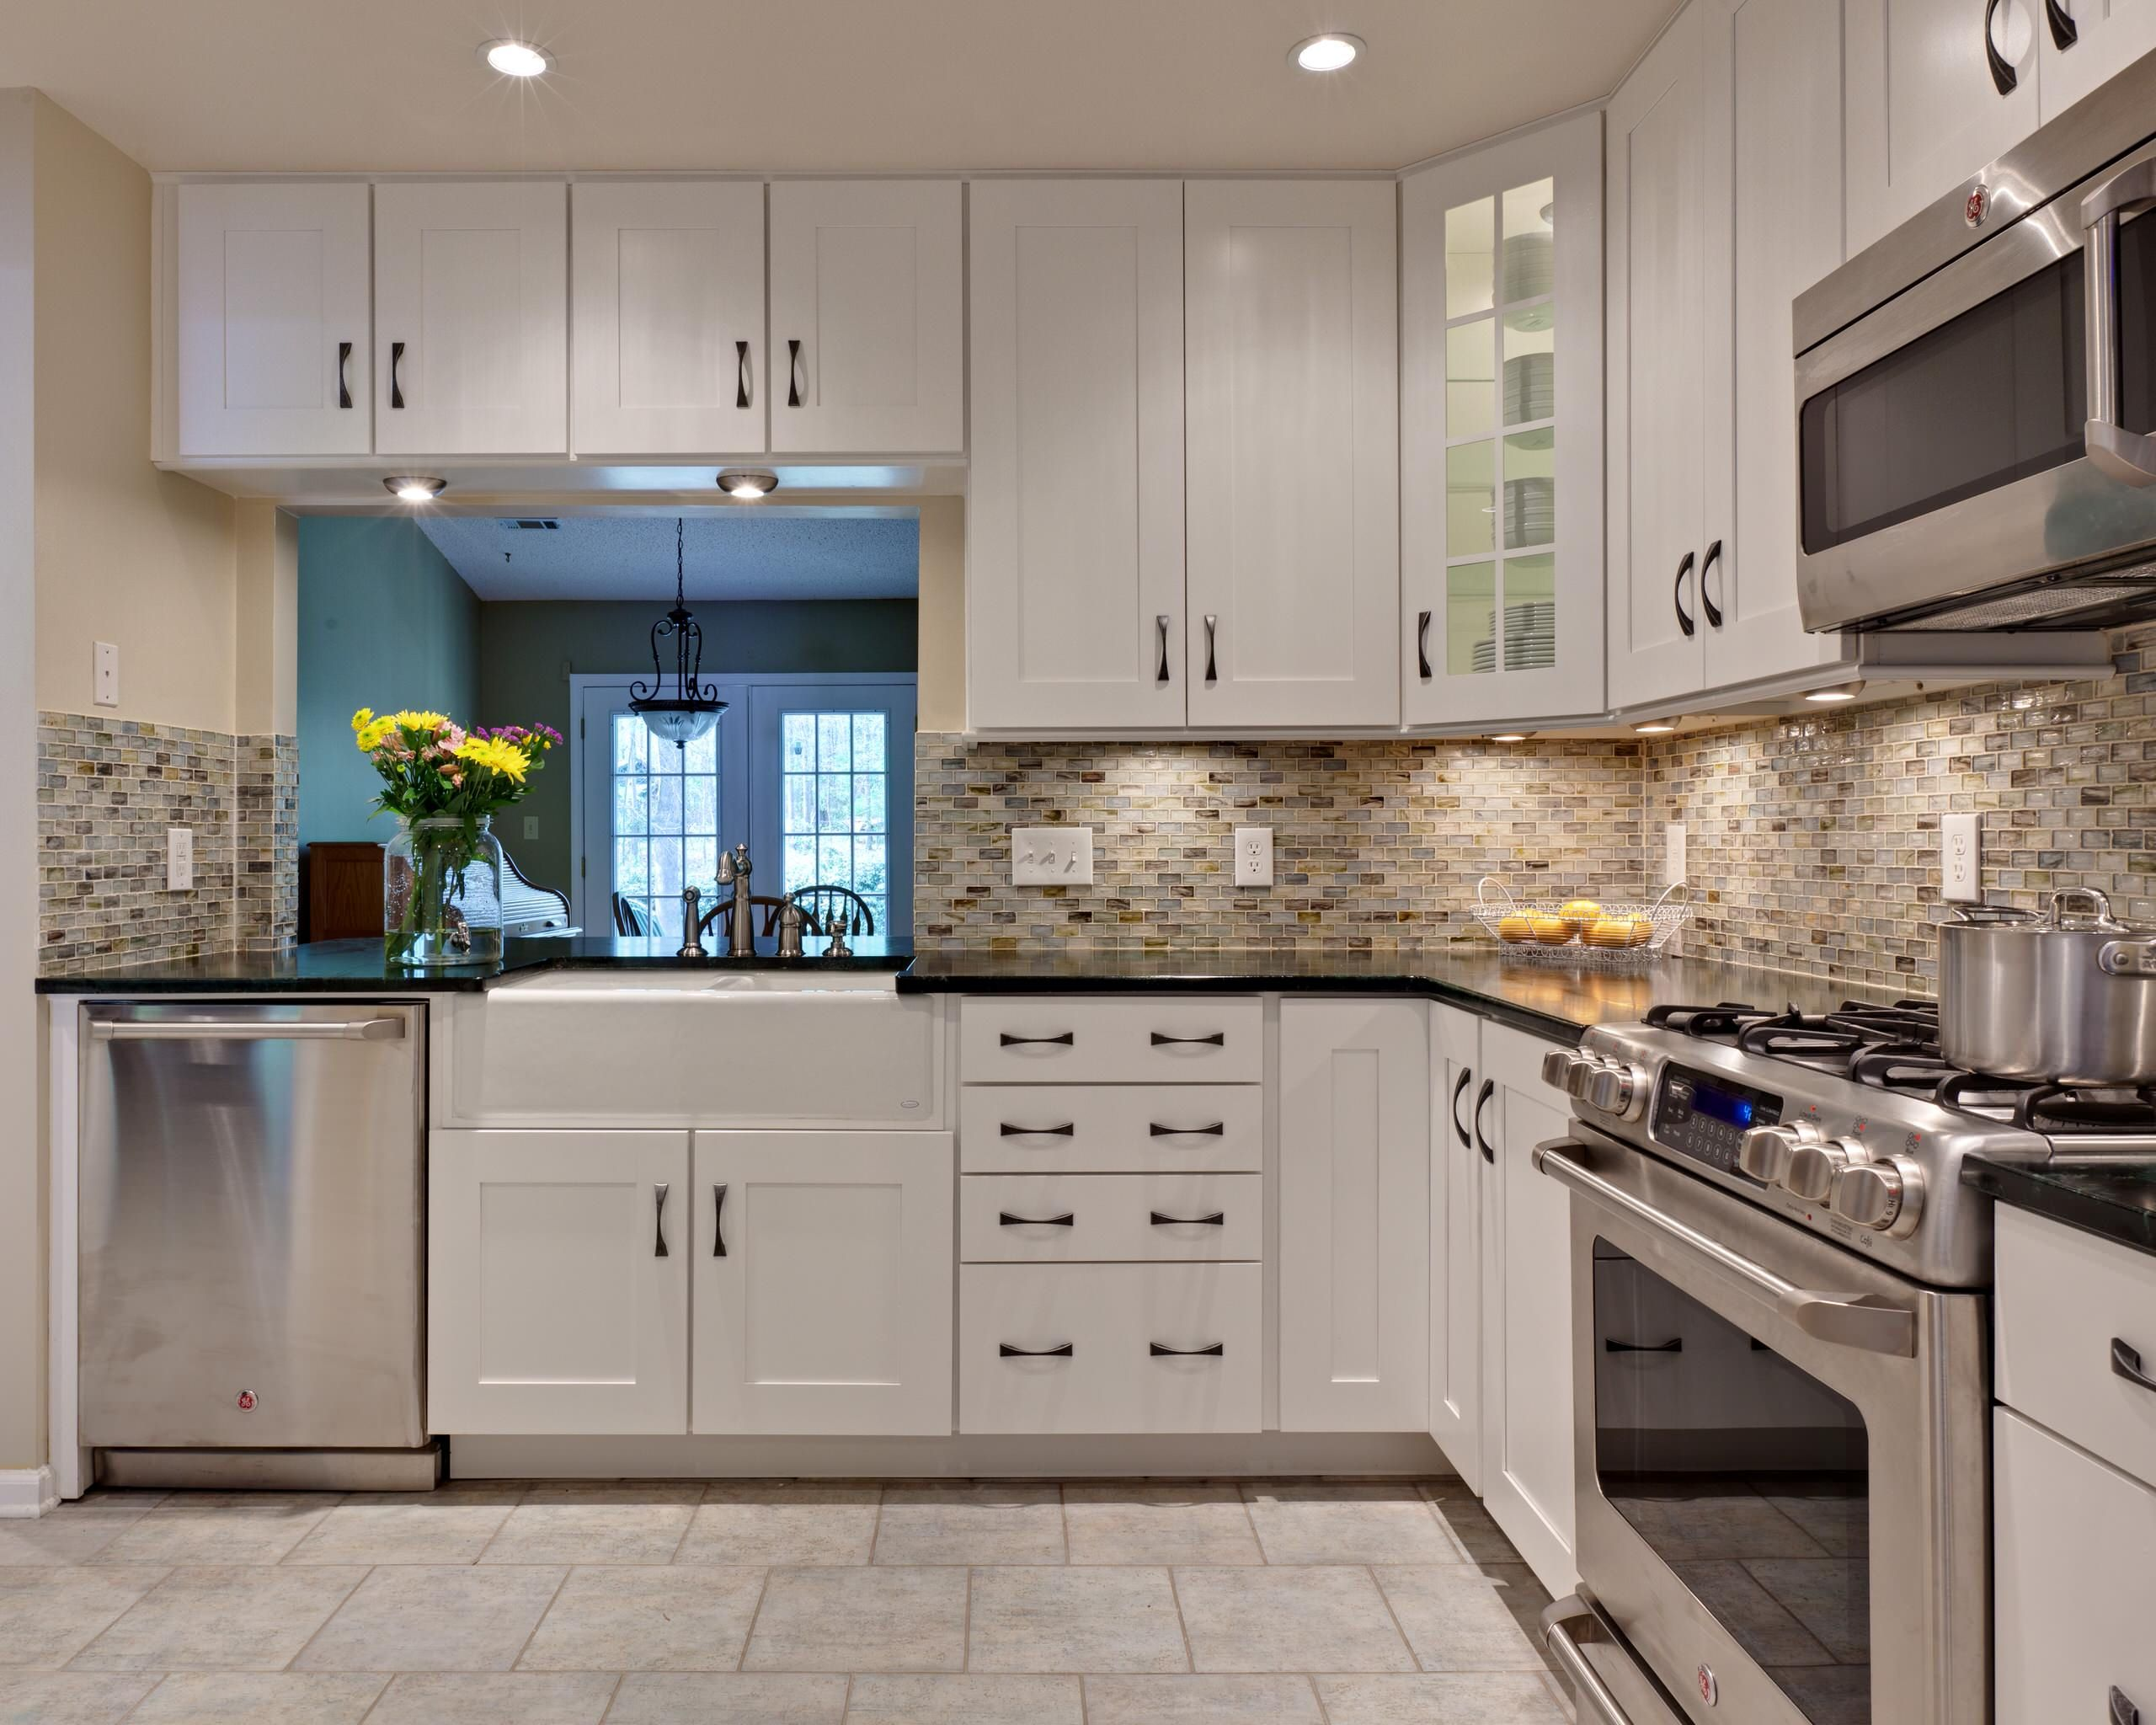 Wonderful White U Shape Granite Countertop Design Ideas With For Incredible Property White Kitchen Cabinet Remodel Contemporary Kitchen Kitchen Cabinet Styles